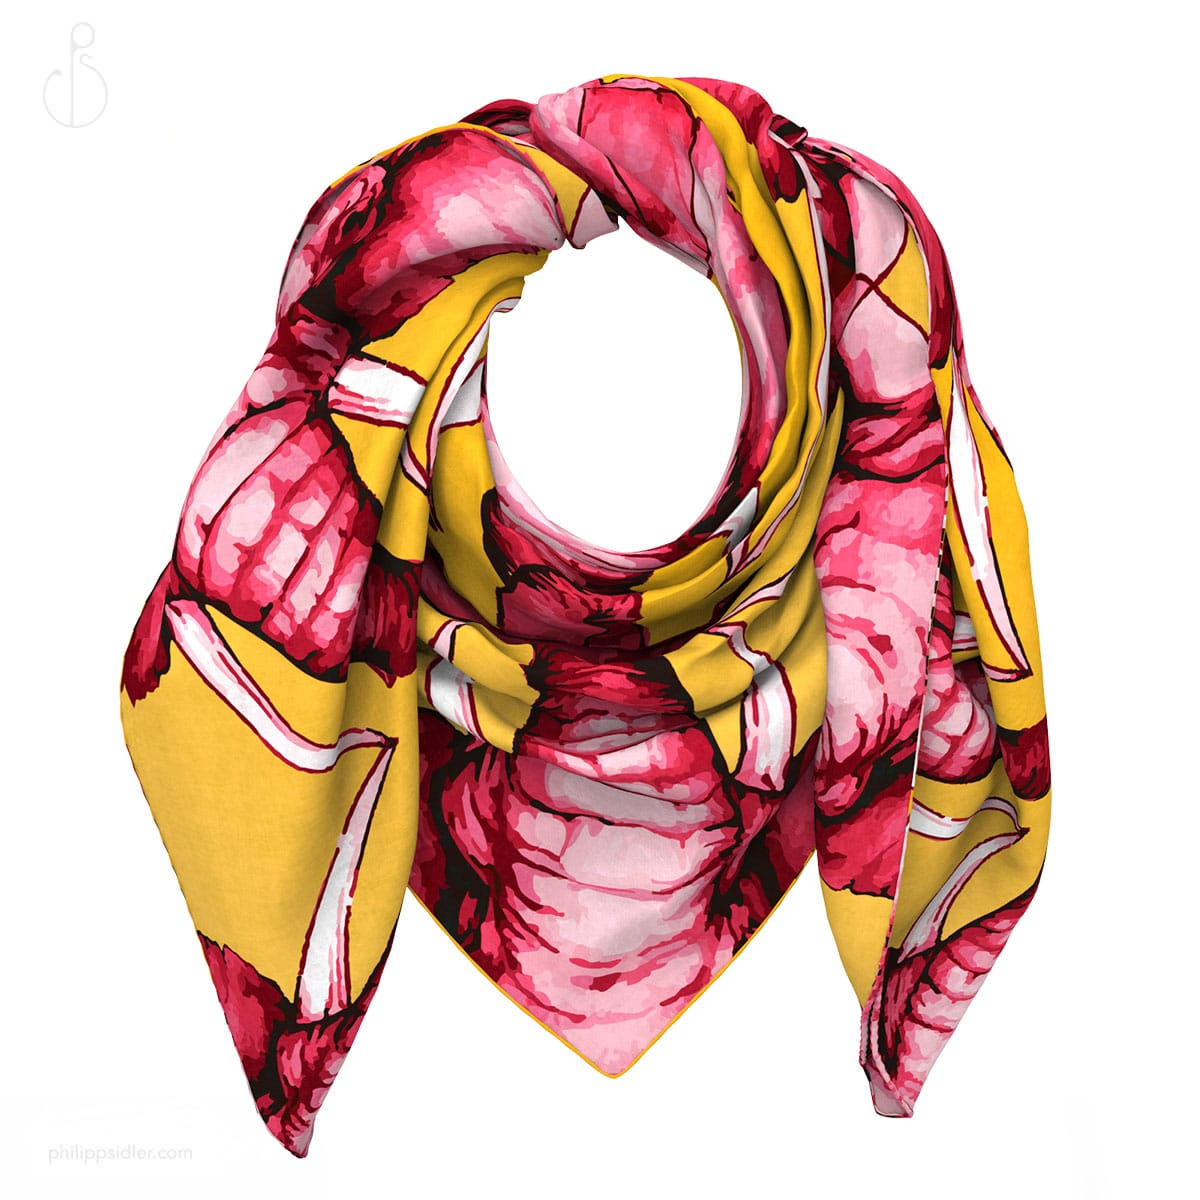 Relephant-mirage-scarf-circle-philippsidler